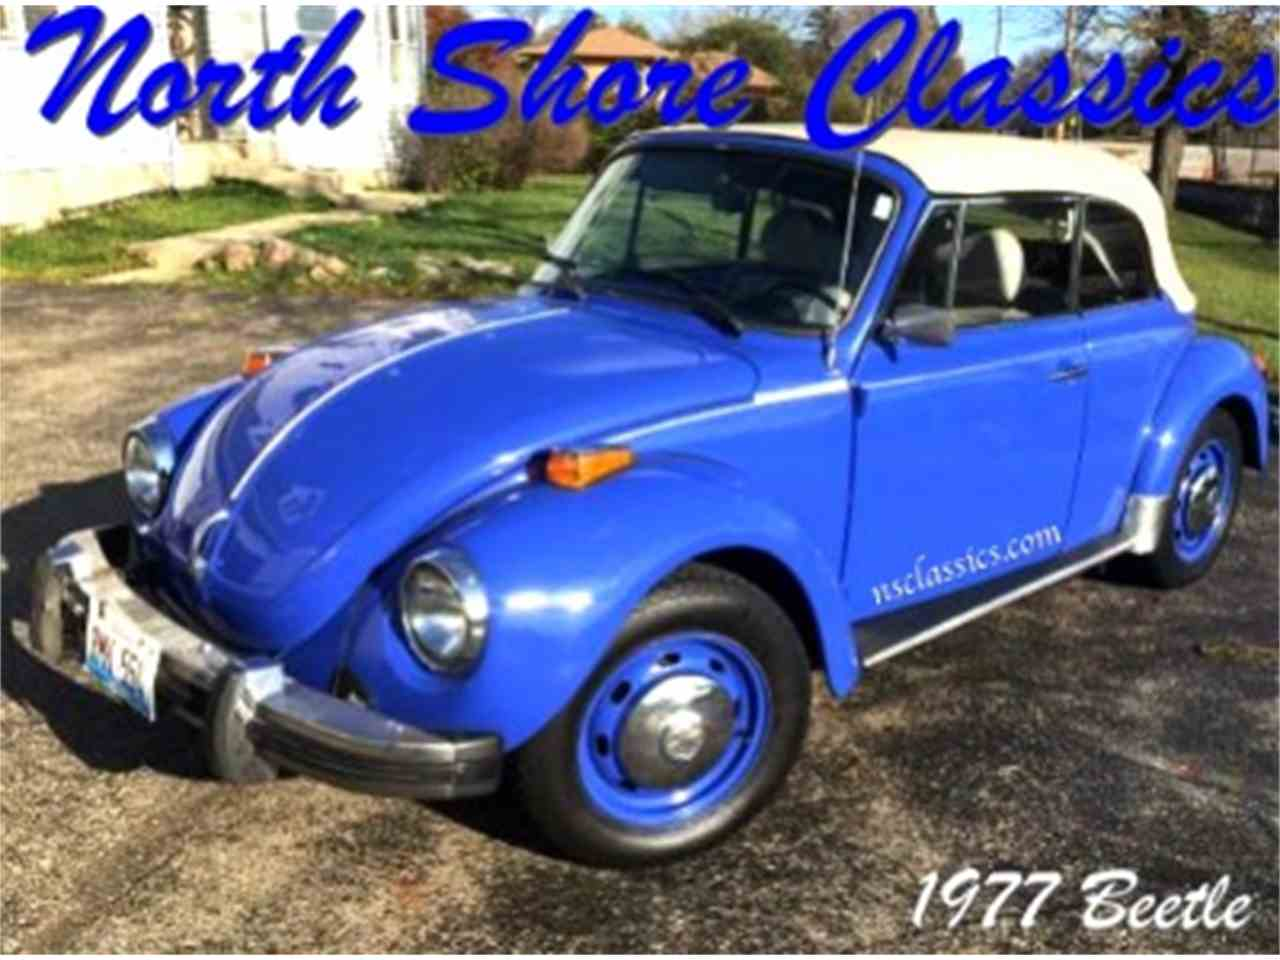 Large Picture of '77 Beetle located in Illinois - $12,995.00 - LTBX